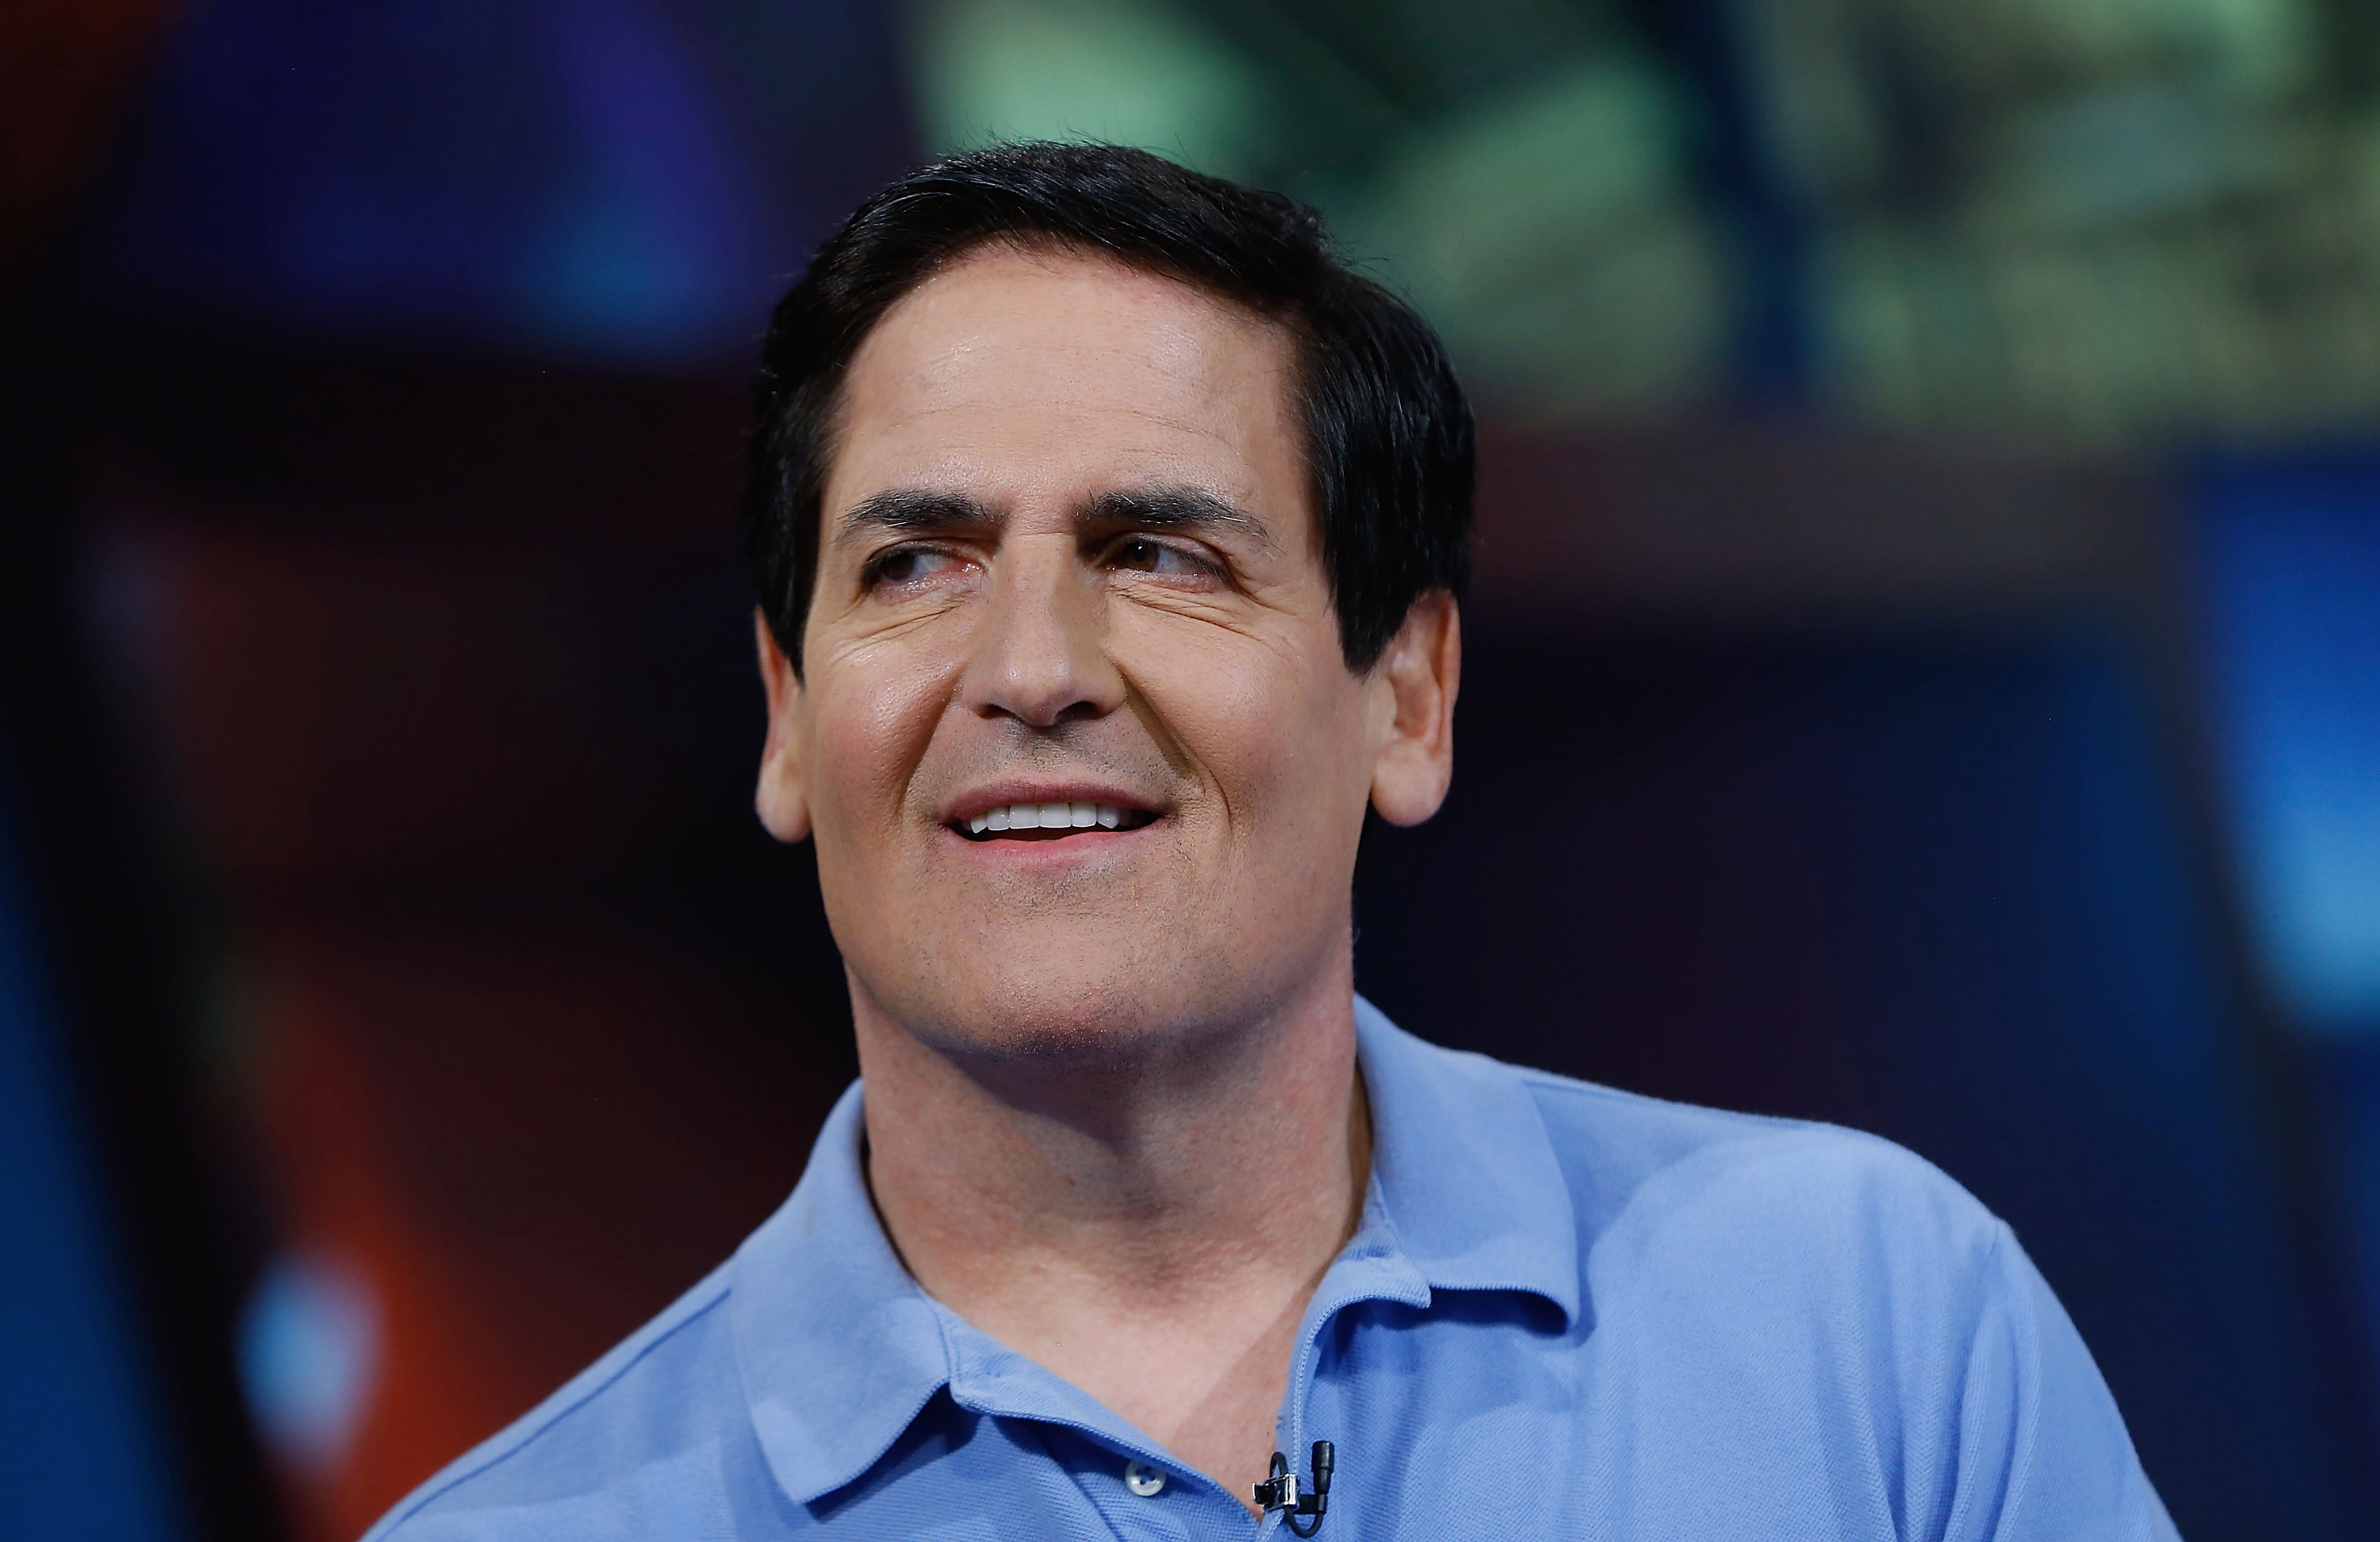 Mark Cuban auditioned for the 1996 drama 'Twister' but lost out to Philip Seymour Hoffman